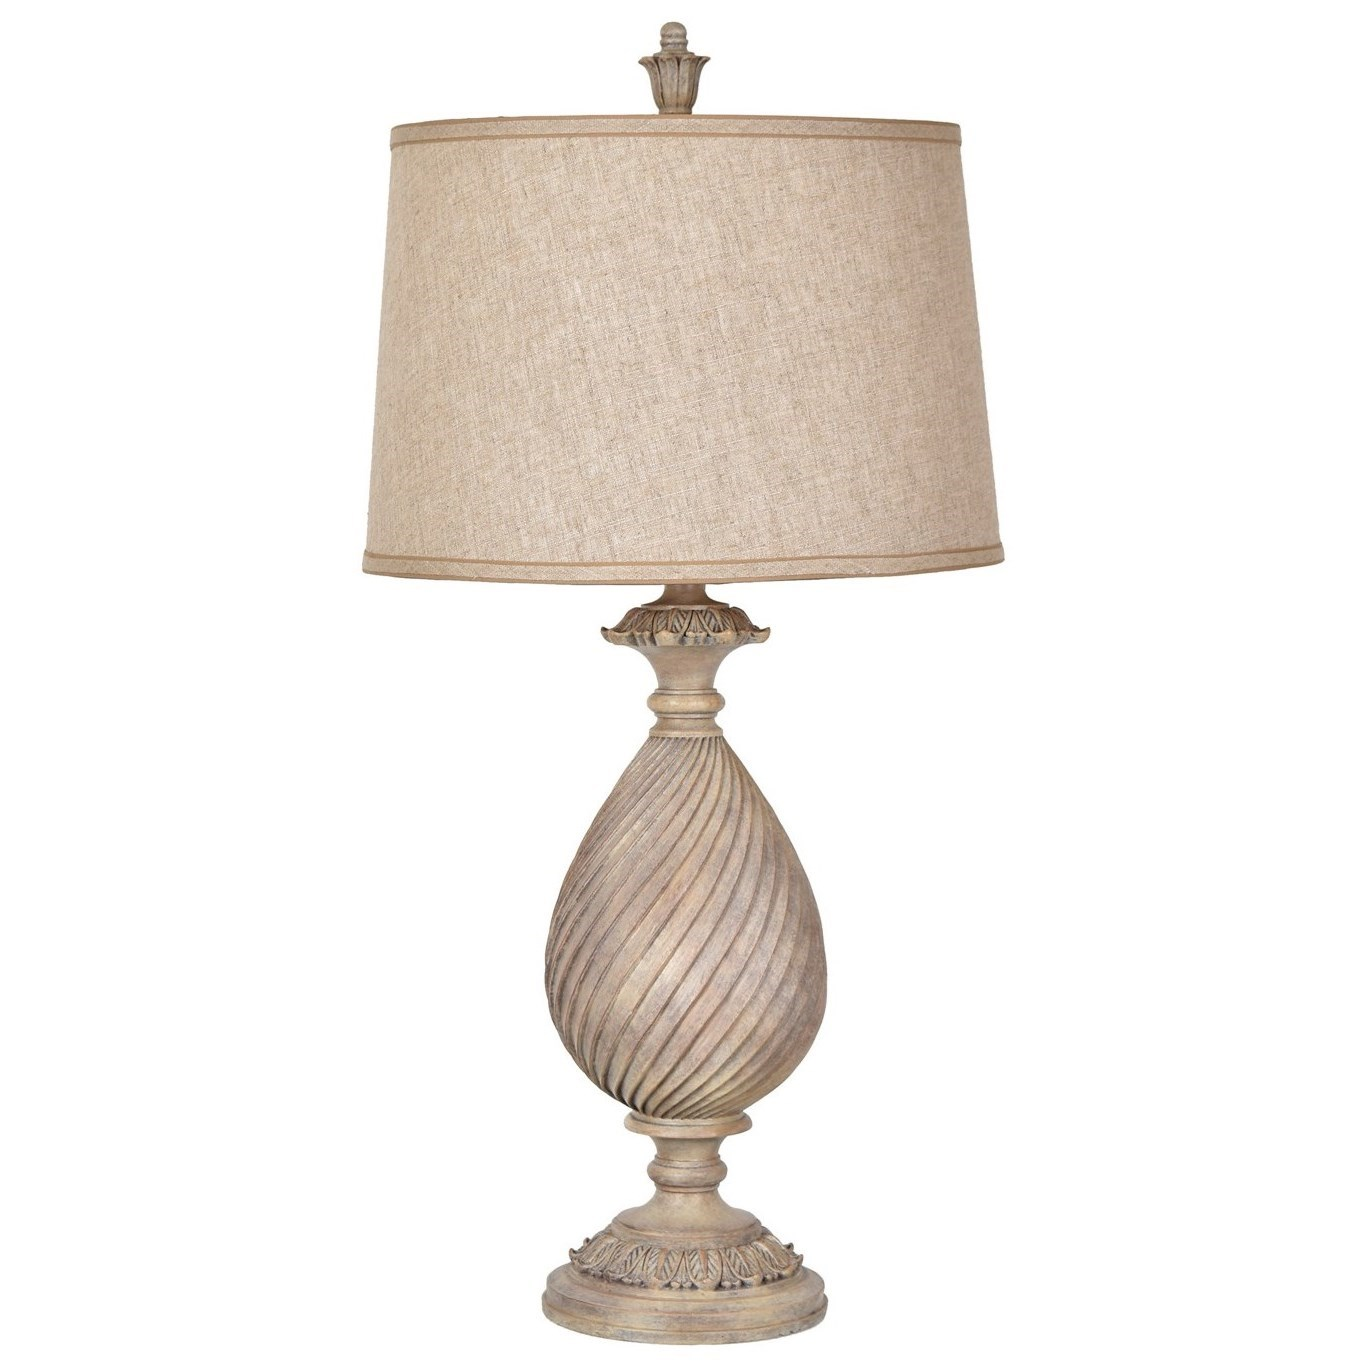 Lighting Sutton Table Lamp by Crestview Collection at Rife's Home Furniture